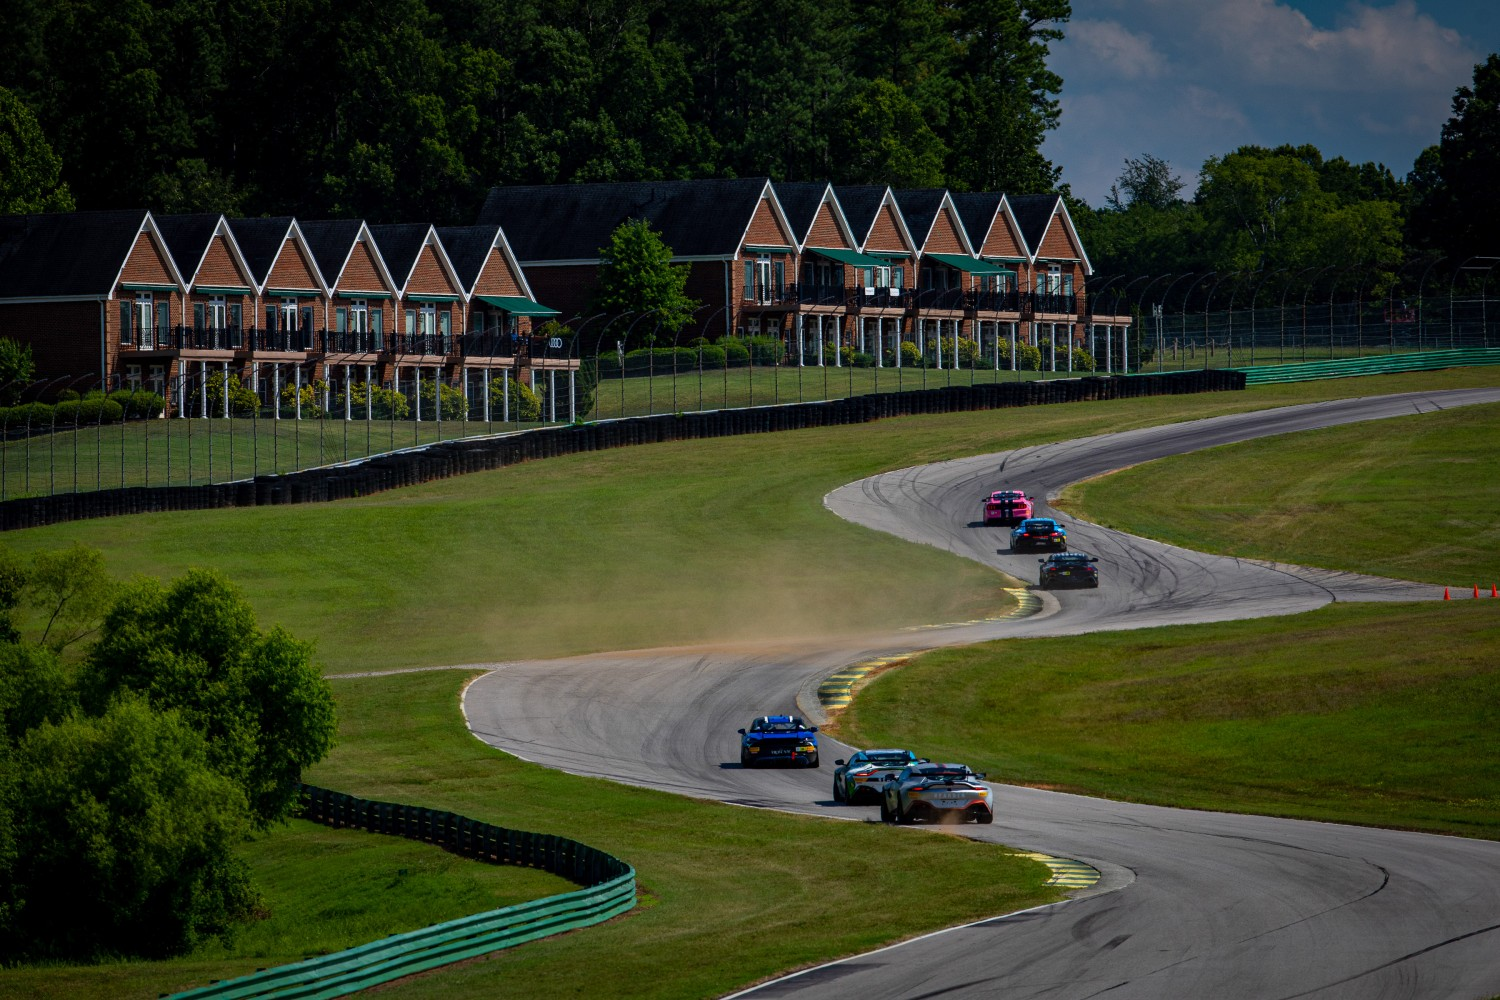 #40 GT4 Sprint, Am, PF Racing, James Pesek, Ford Mustang GT4\, SRO VIR 2020, Alton VA